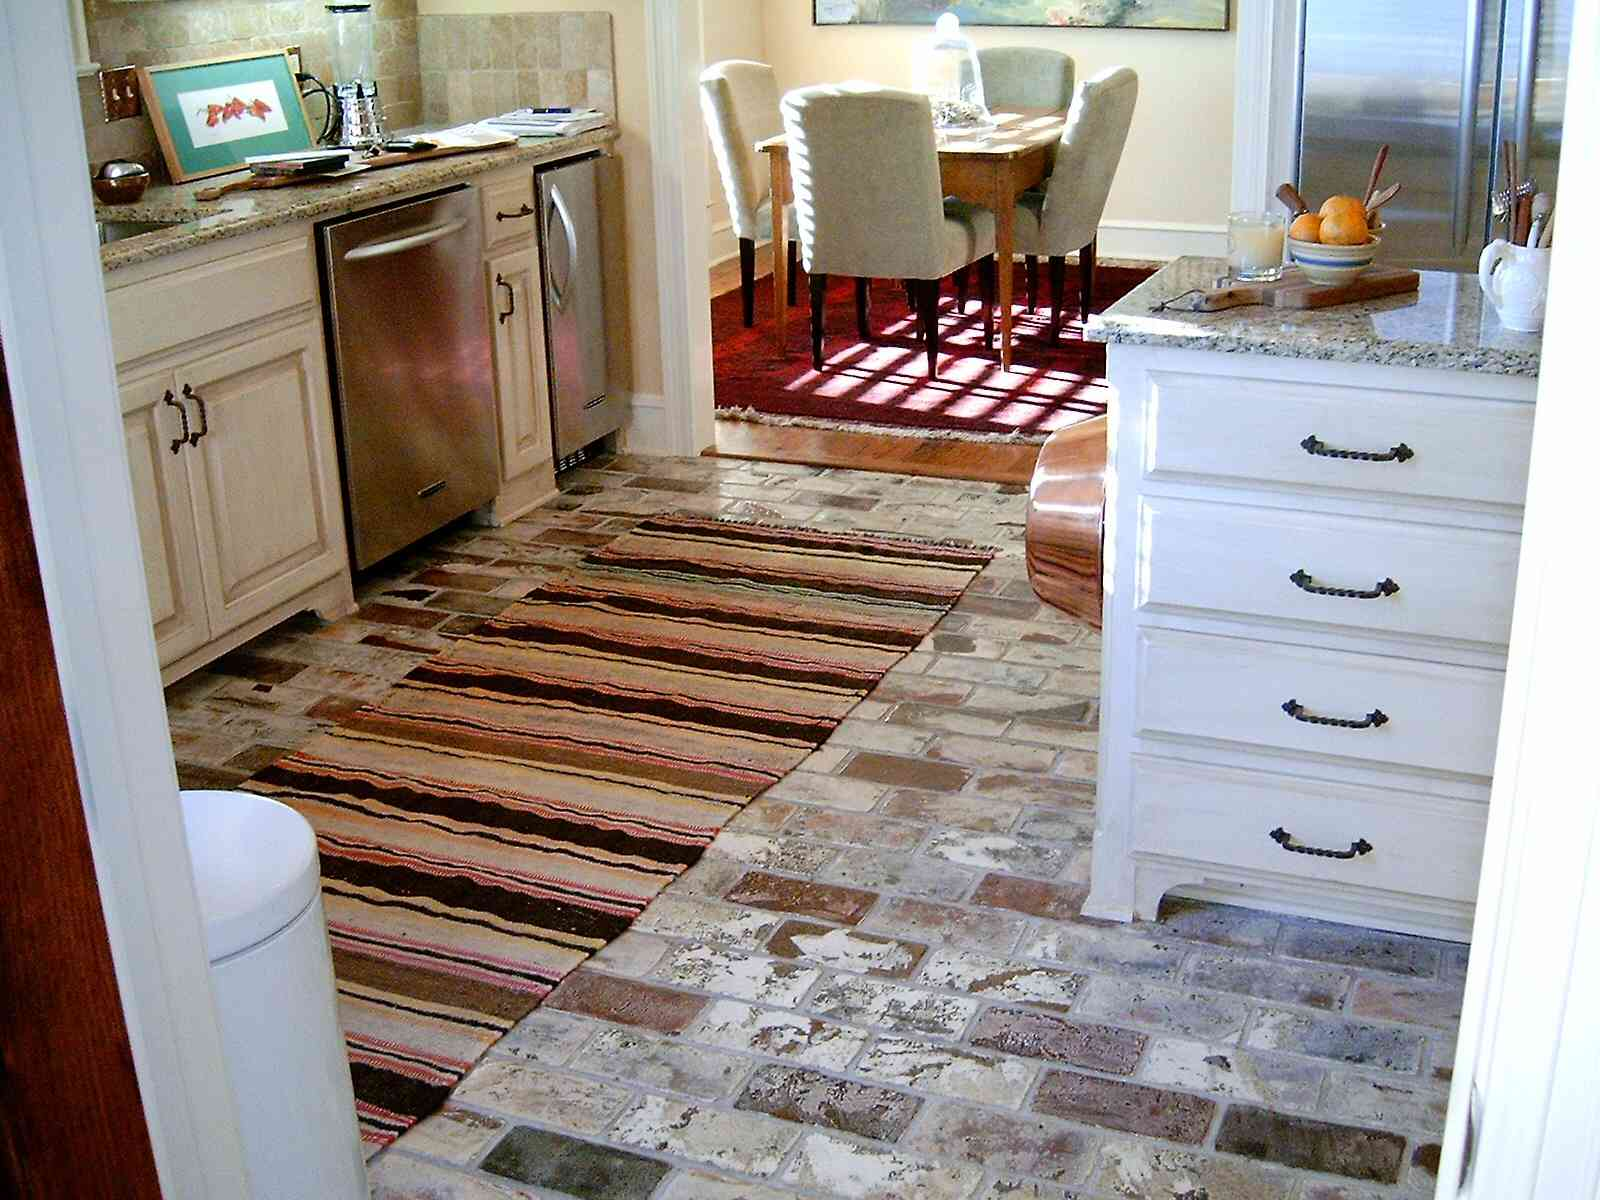 4 Inexpensive Options for Kitchen Flooring Options on kitchens with barn wood flooring, kitchens with travertine tile, kitchens with terracotta tile flooring, kitchens with white porcelain tile, kitchens with mosaic tile, kitchens with distressed wood flooring, kitchens with carpet tile flooring, kitchens with penny tile, kitchens with ceramic tile, kitchens with wood grain tile, kitchens with porcelain wood tile,